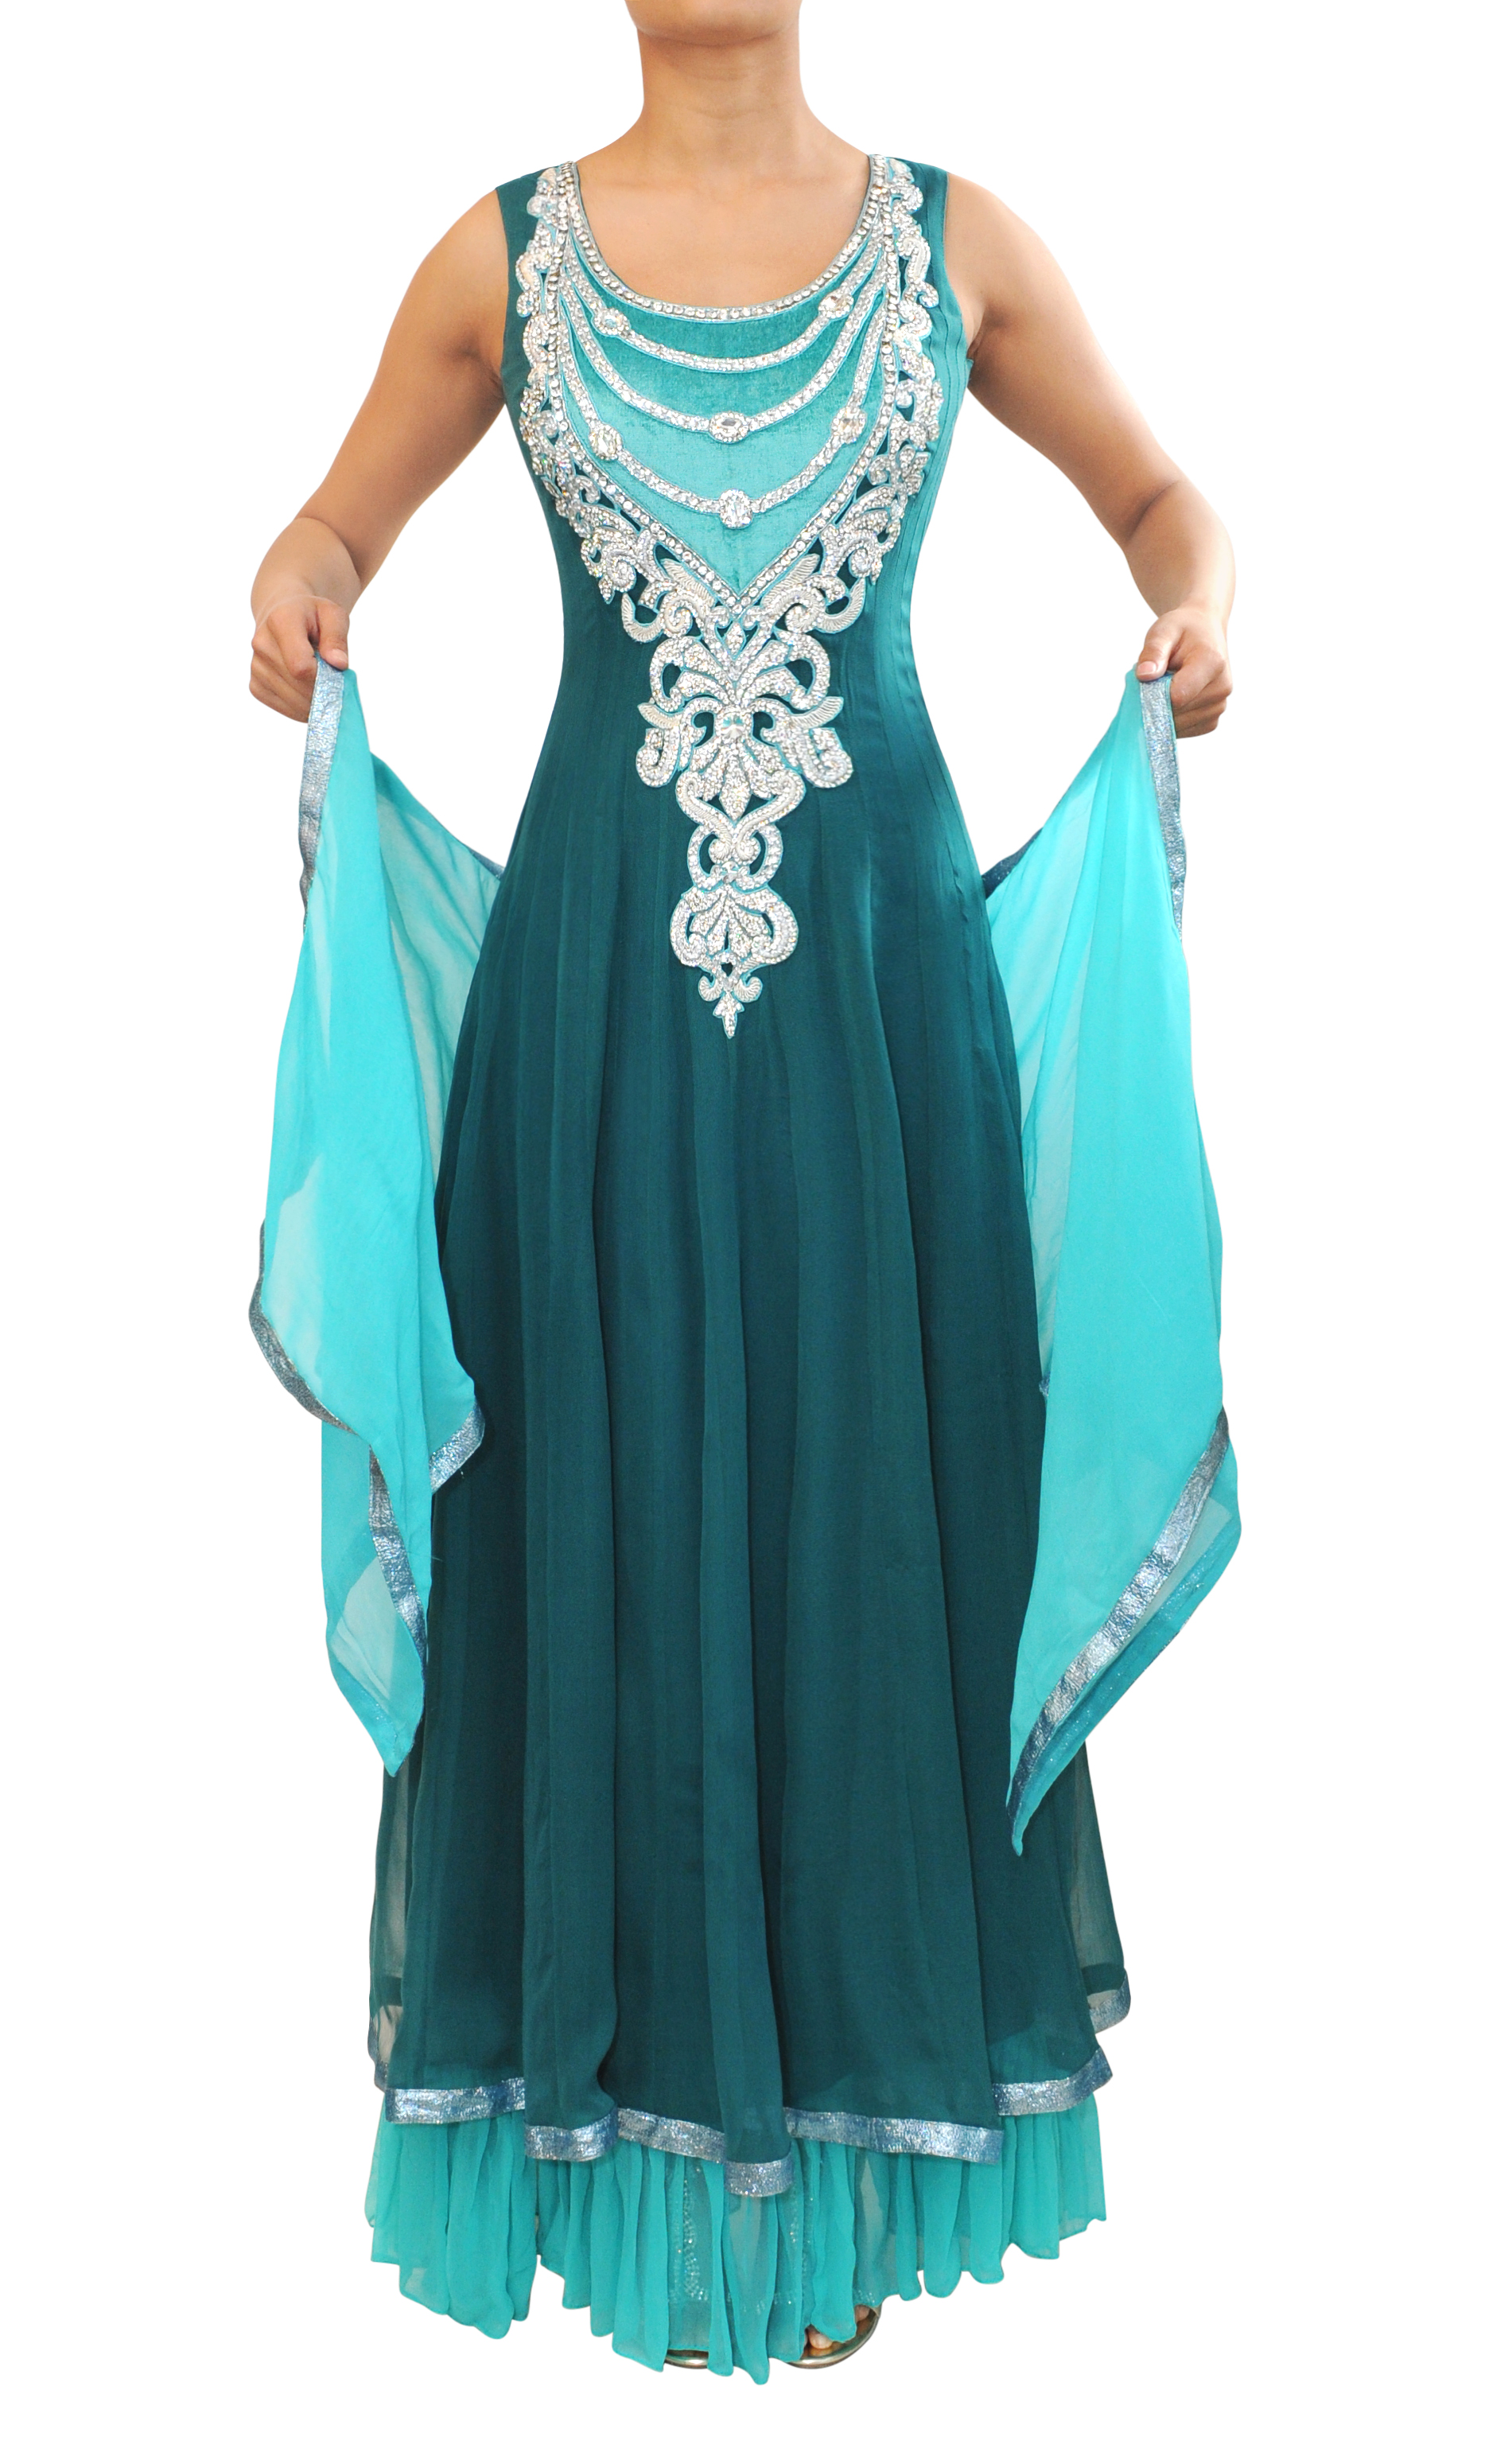 FunkyAsian - Crystal embroidered teal chiffon goergette layered gown ...